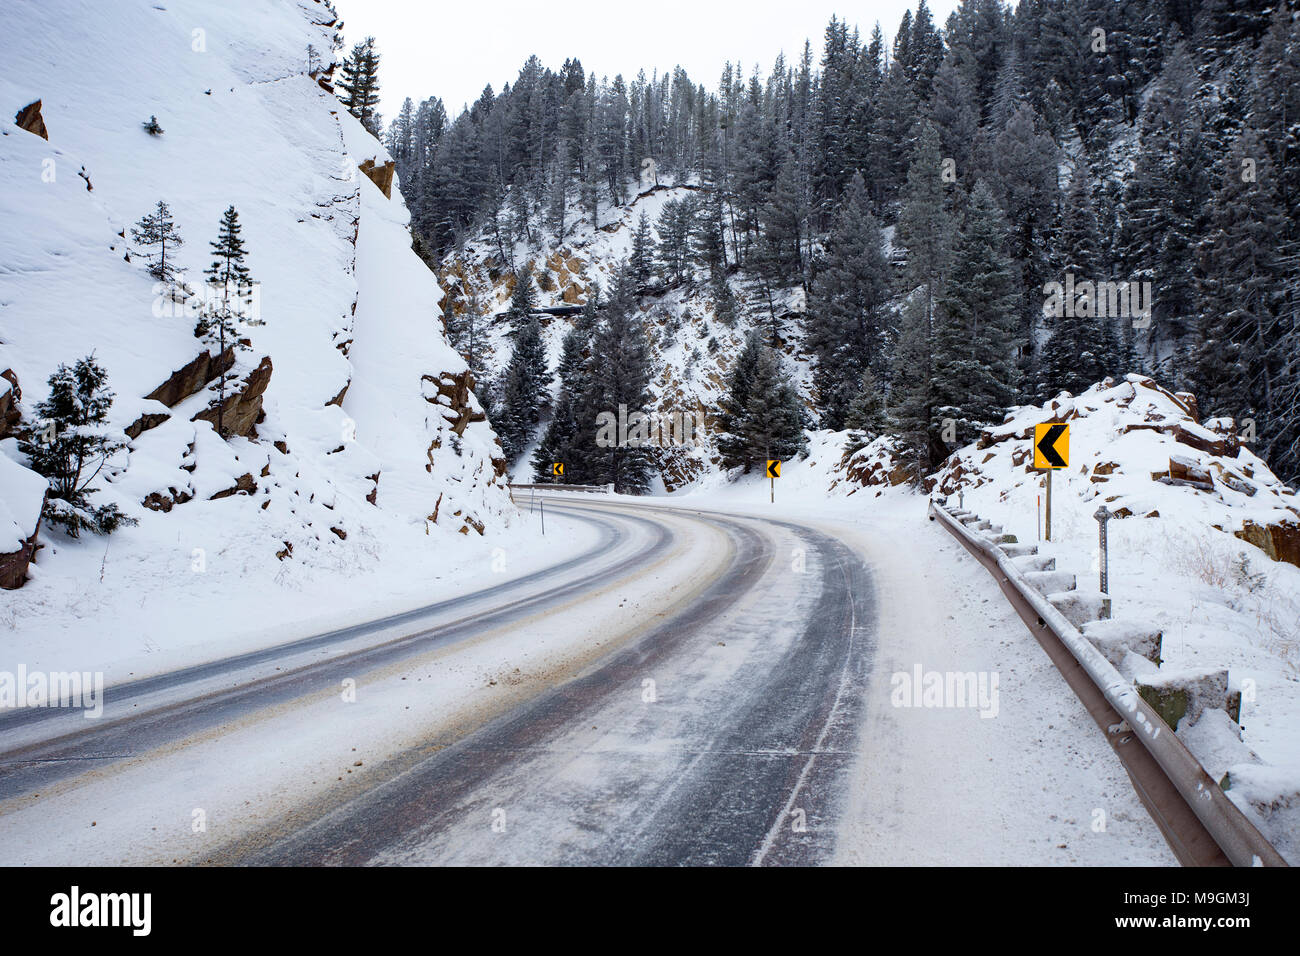 Icy road conditions coming up on a sharp curve, at Georgetown Pass, on Montana Highway 1, southeast of Philipsburg, MT. - Stock Image